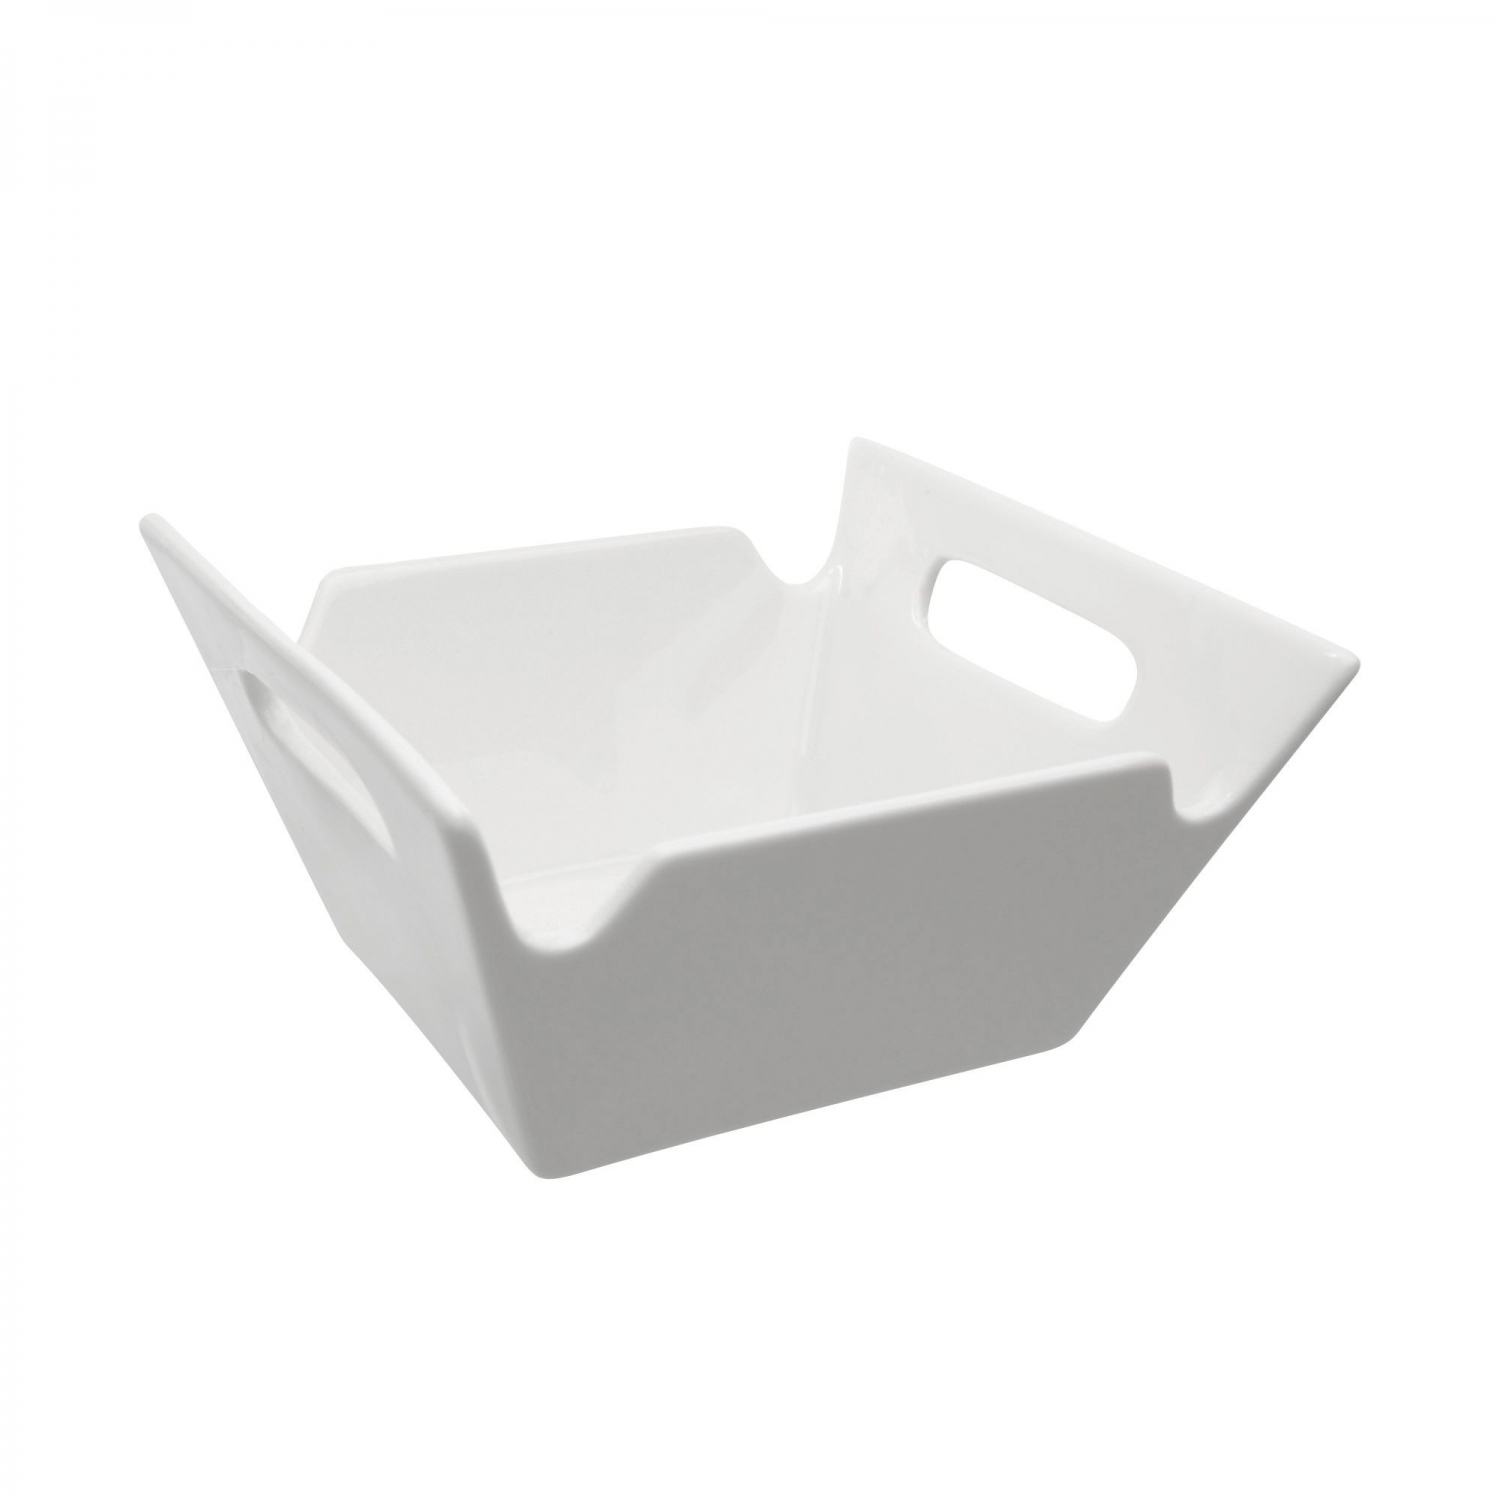 10 Strawberry Street WTR-10SQHNDLBWL Whittier Square Bowl with Handles 88 oz.